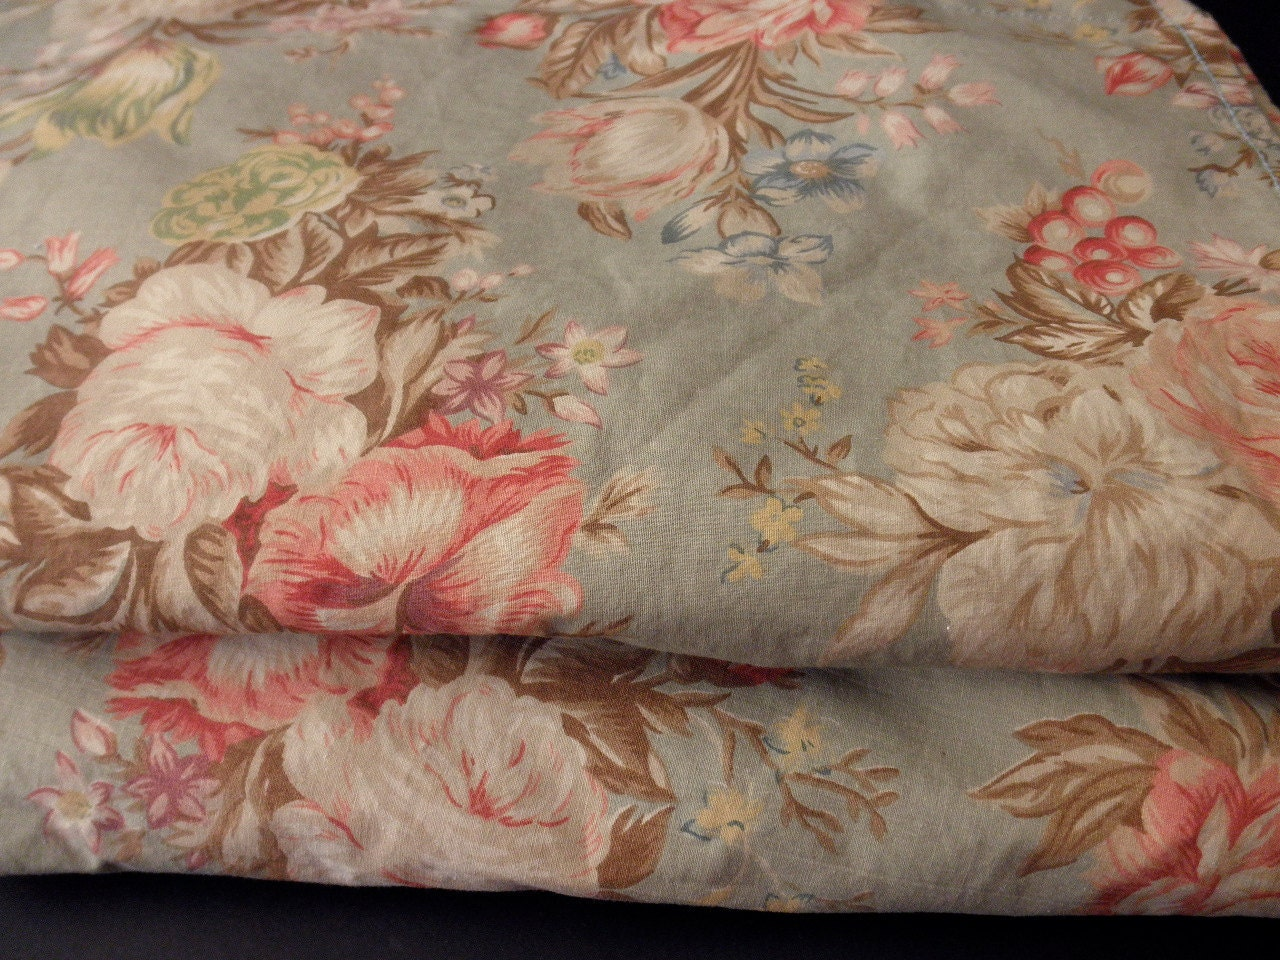 Two King Ralph Lauren Sheets With Floral Design By